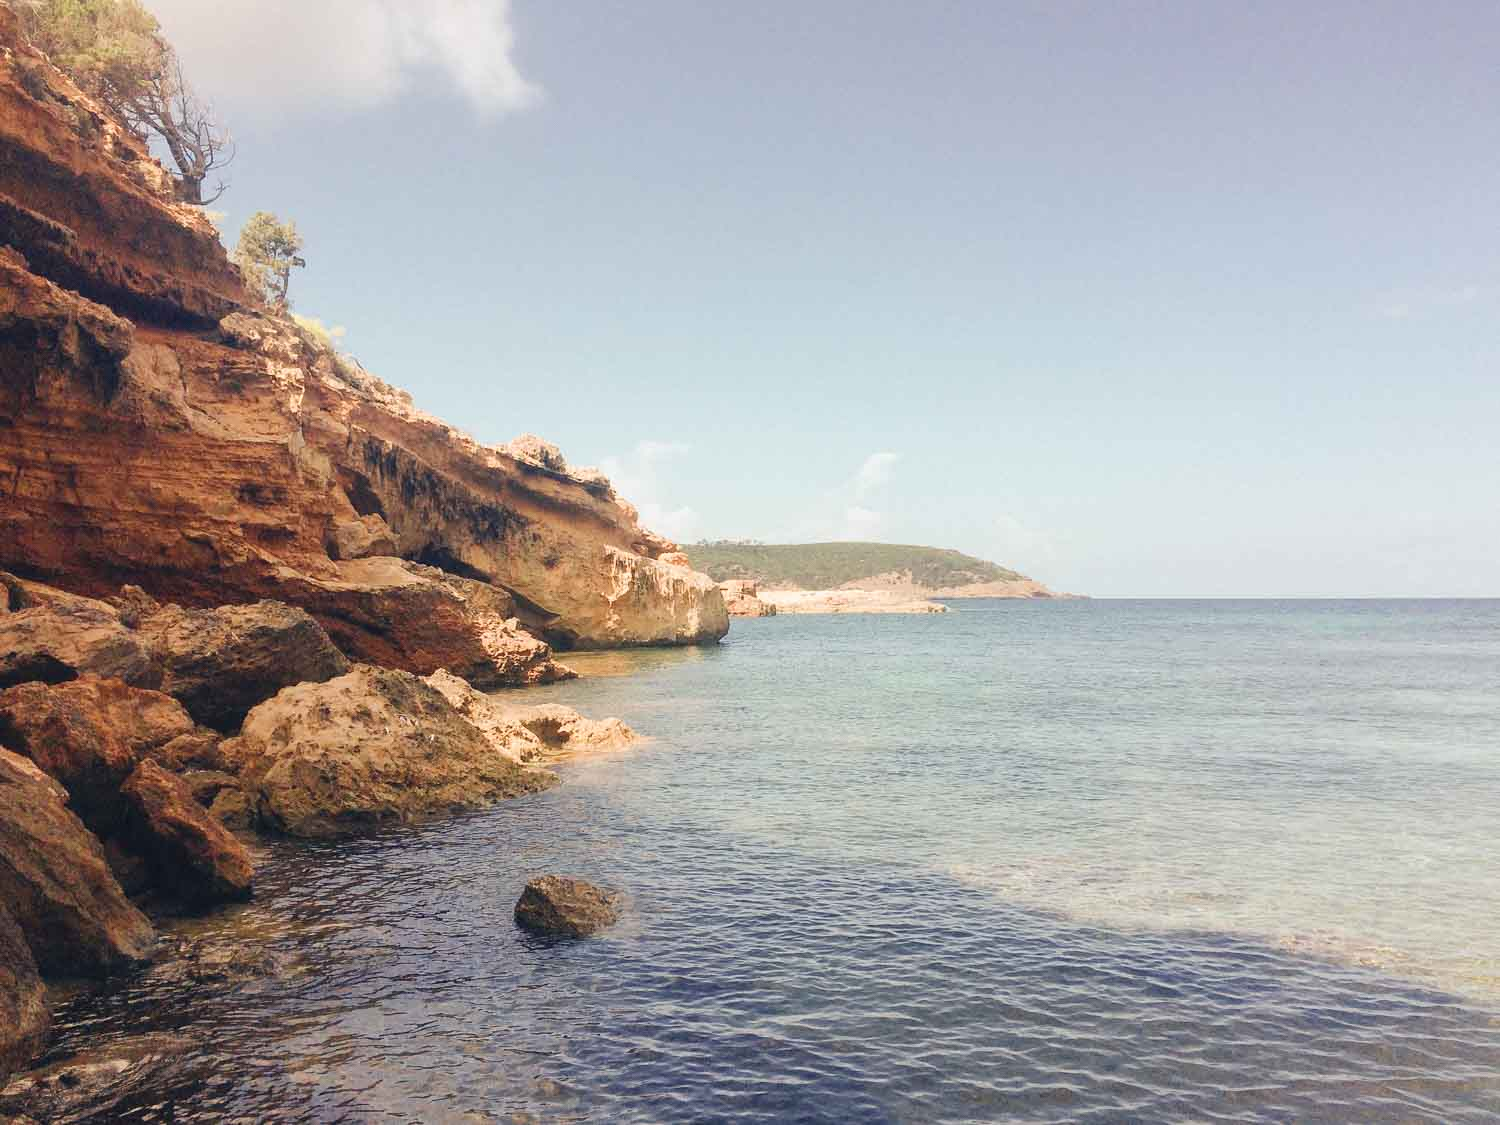 Beautiful Ibiza coastline